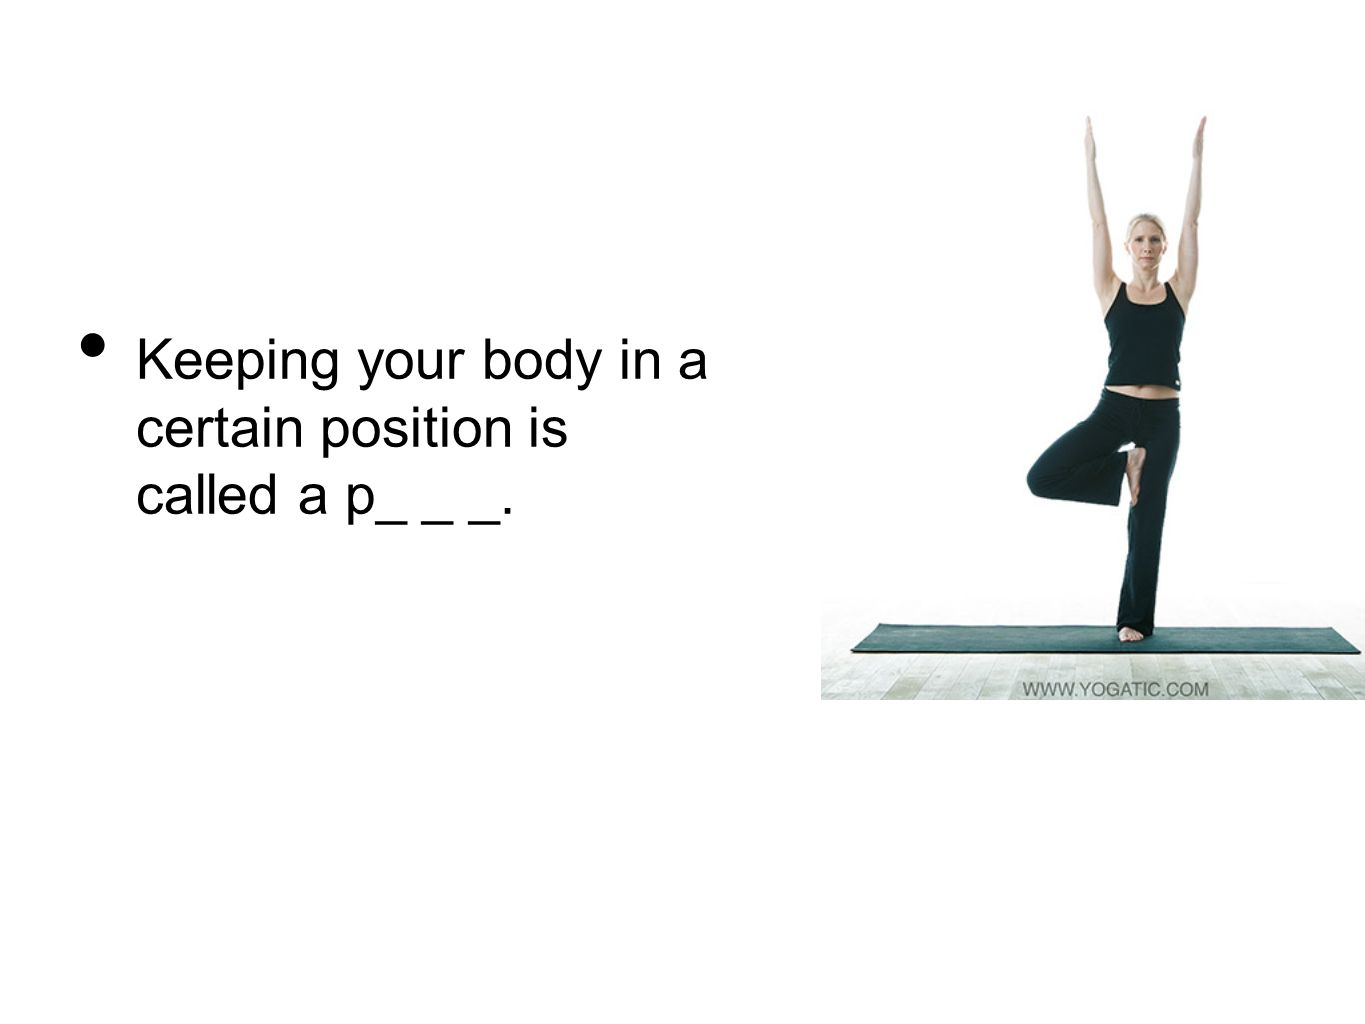 Keeping your body in a certain position is called a p_ _ _.